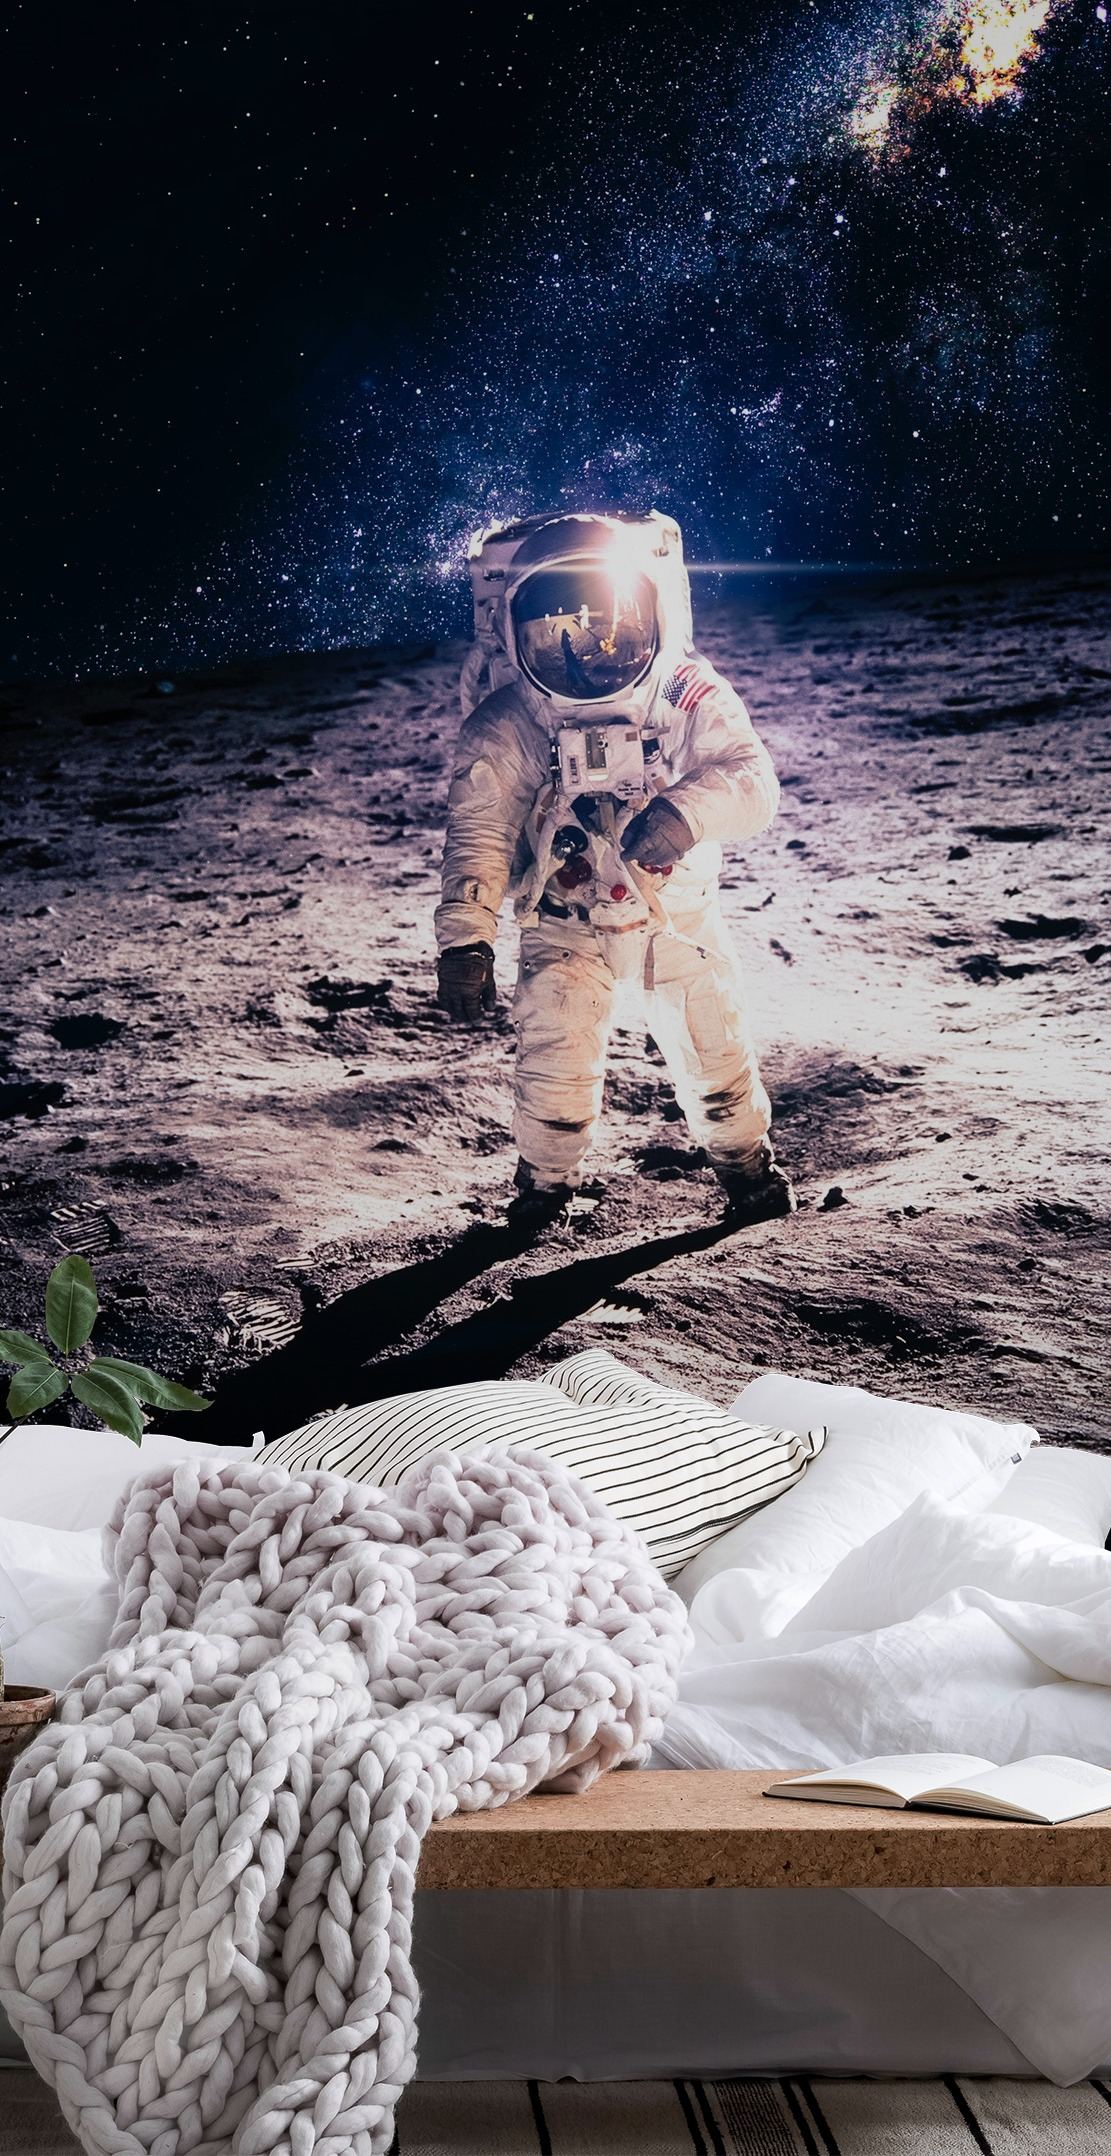 Wall mural astronaut photo wallpaper space moon for Astronaut wall mural